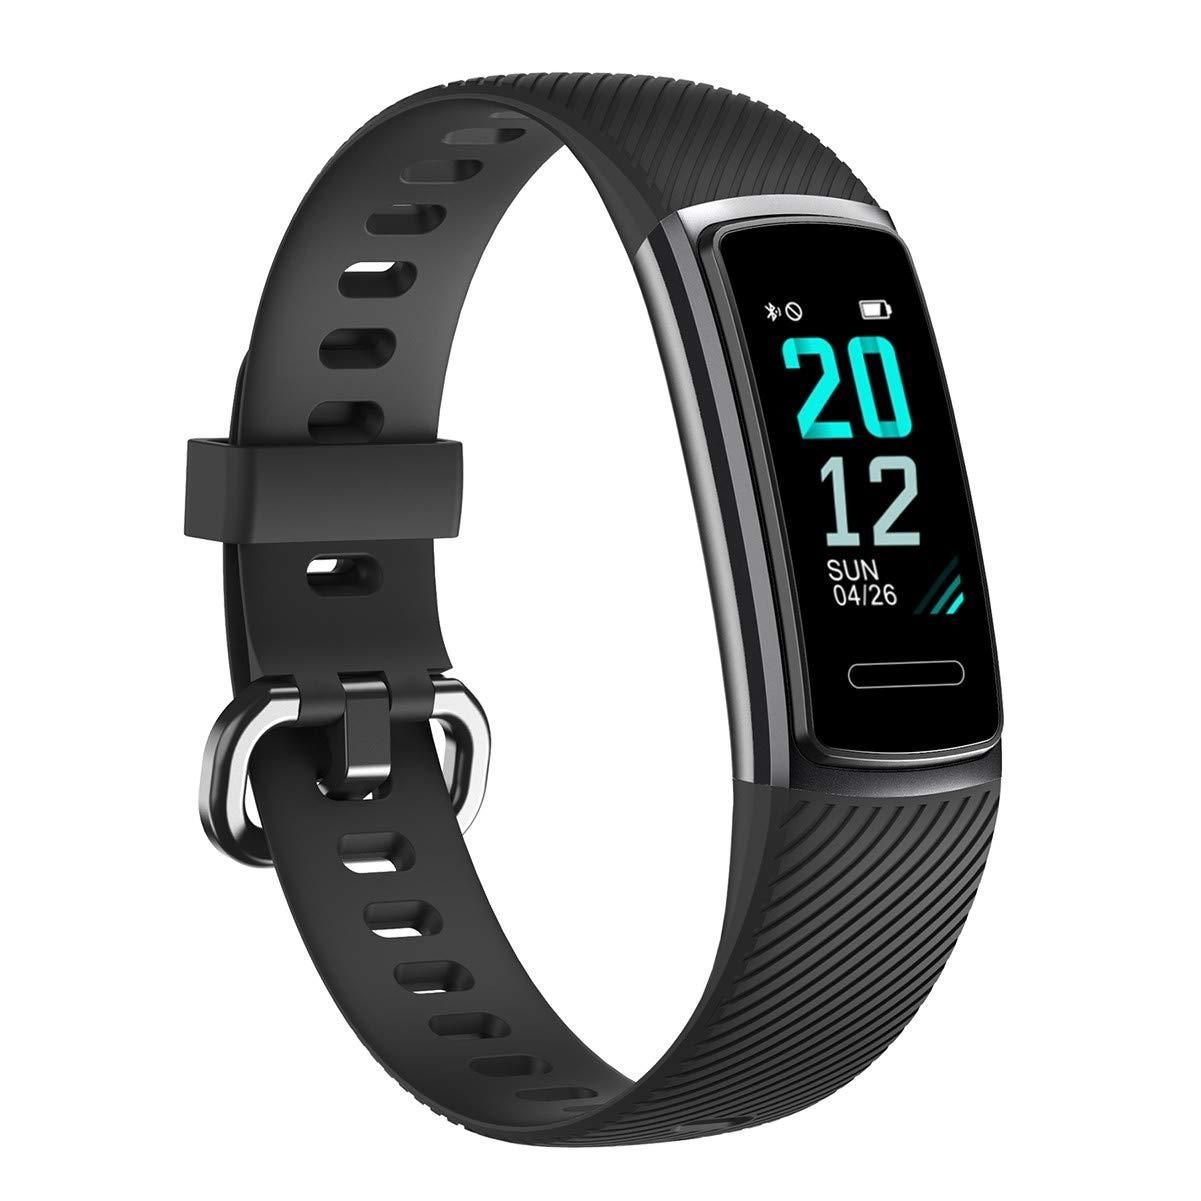 Amazon 100 Giveaway Rebate Deal Closing In 24 Hours Message Us How On Dealkingkong On Faceboo Fitness Watch Tracker Fitness Tracker Fitness Smart Watch